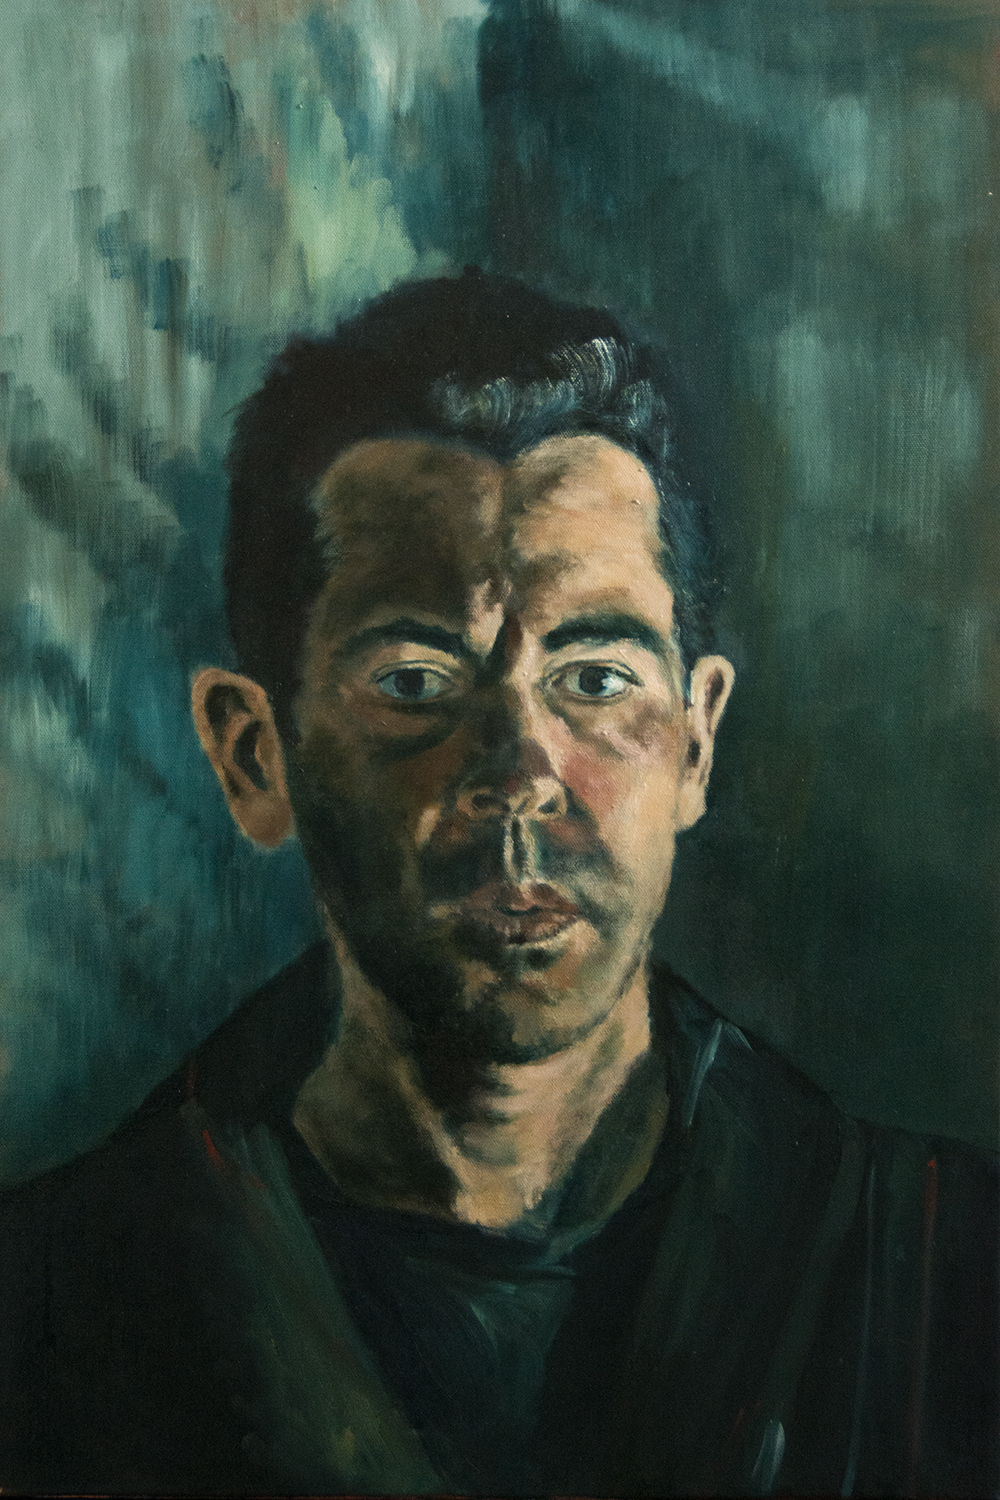 self-portrait, 75x50 cm, oil on canvas (preselected, BP Portrait Award 2016)